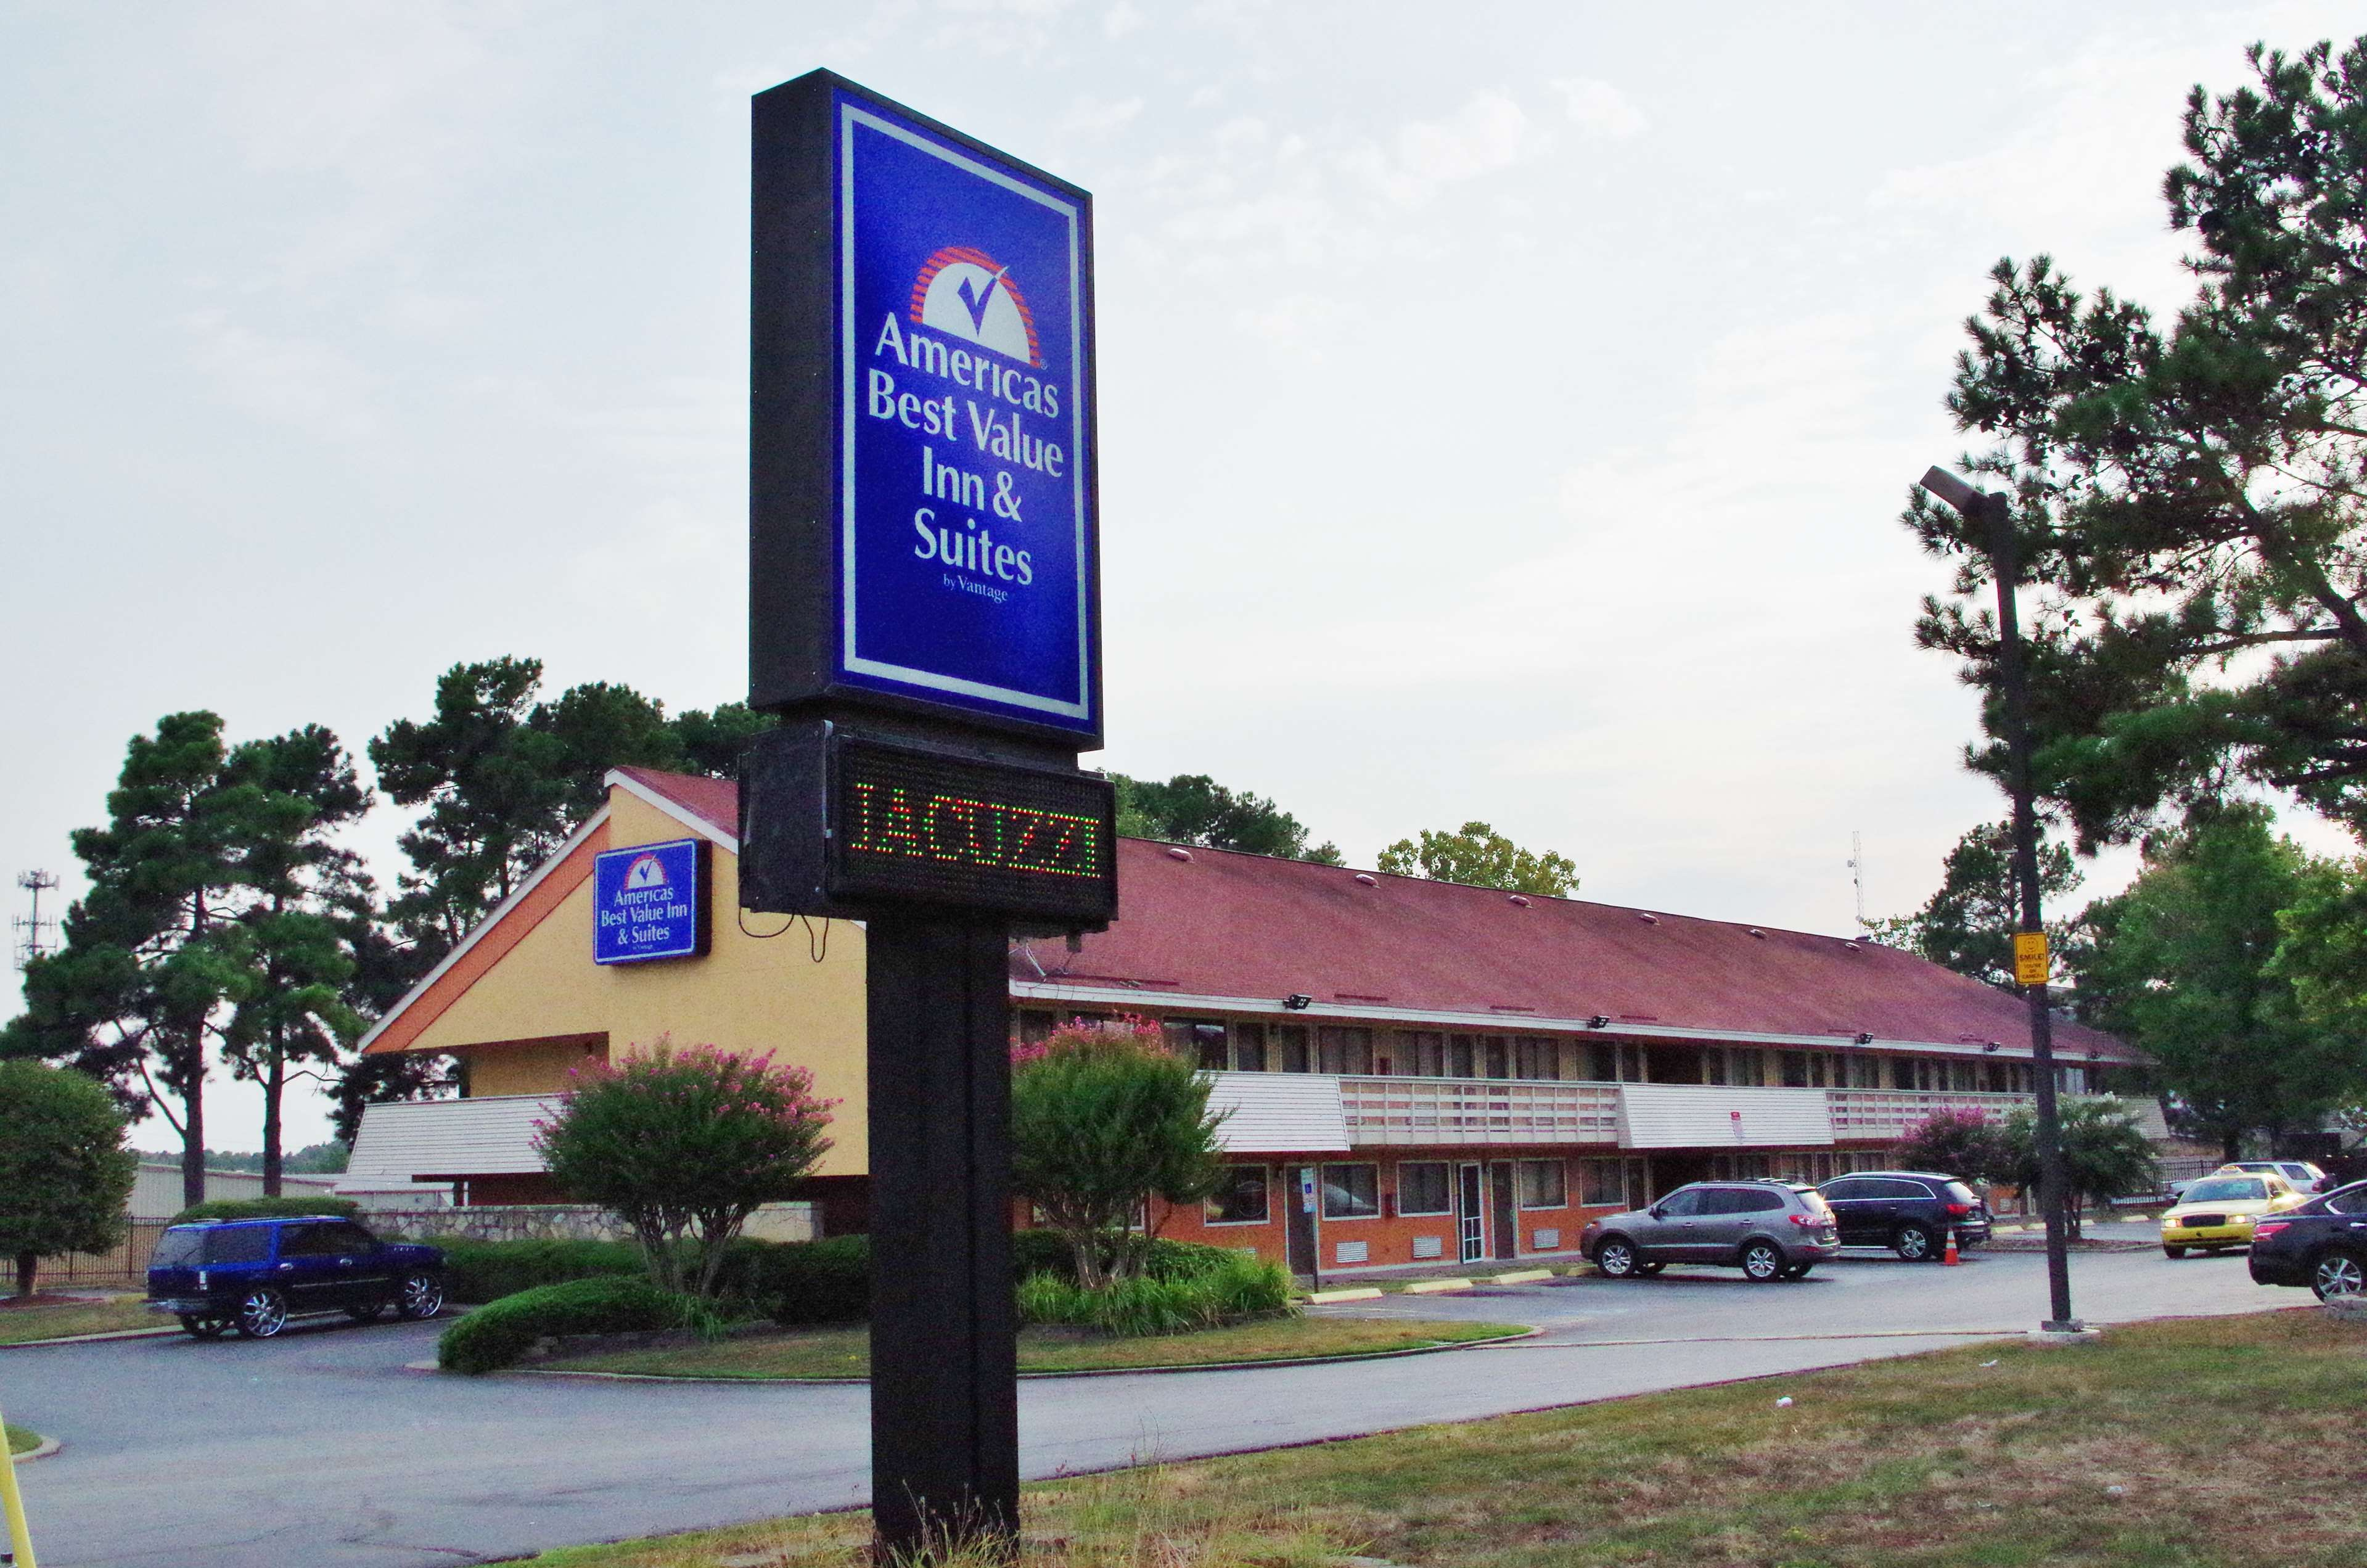 Americas best value inn suites little rock coupons near for Americas best coupons